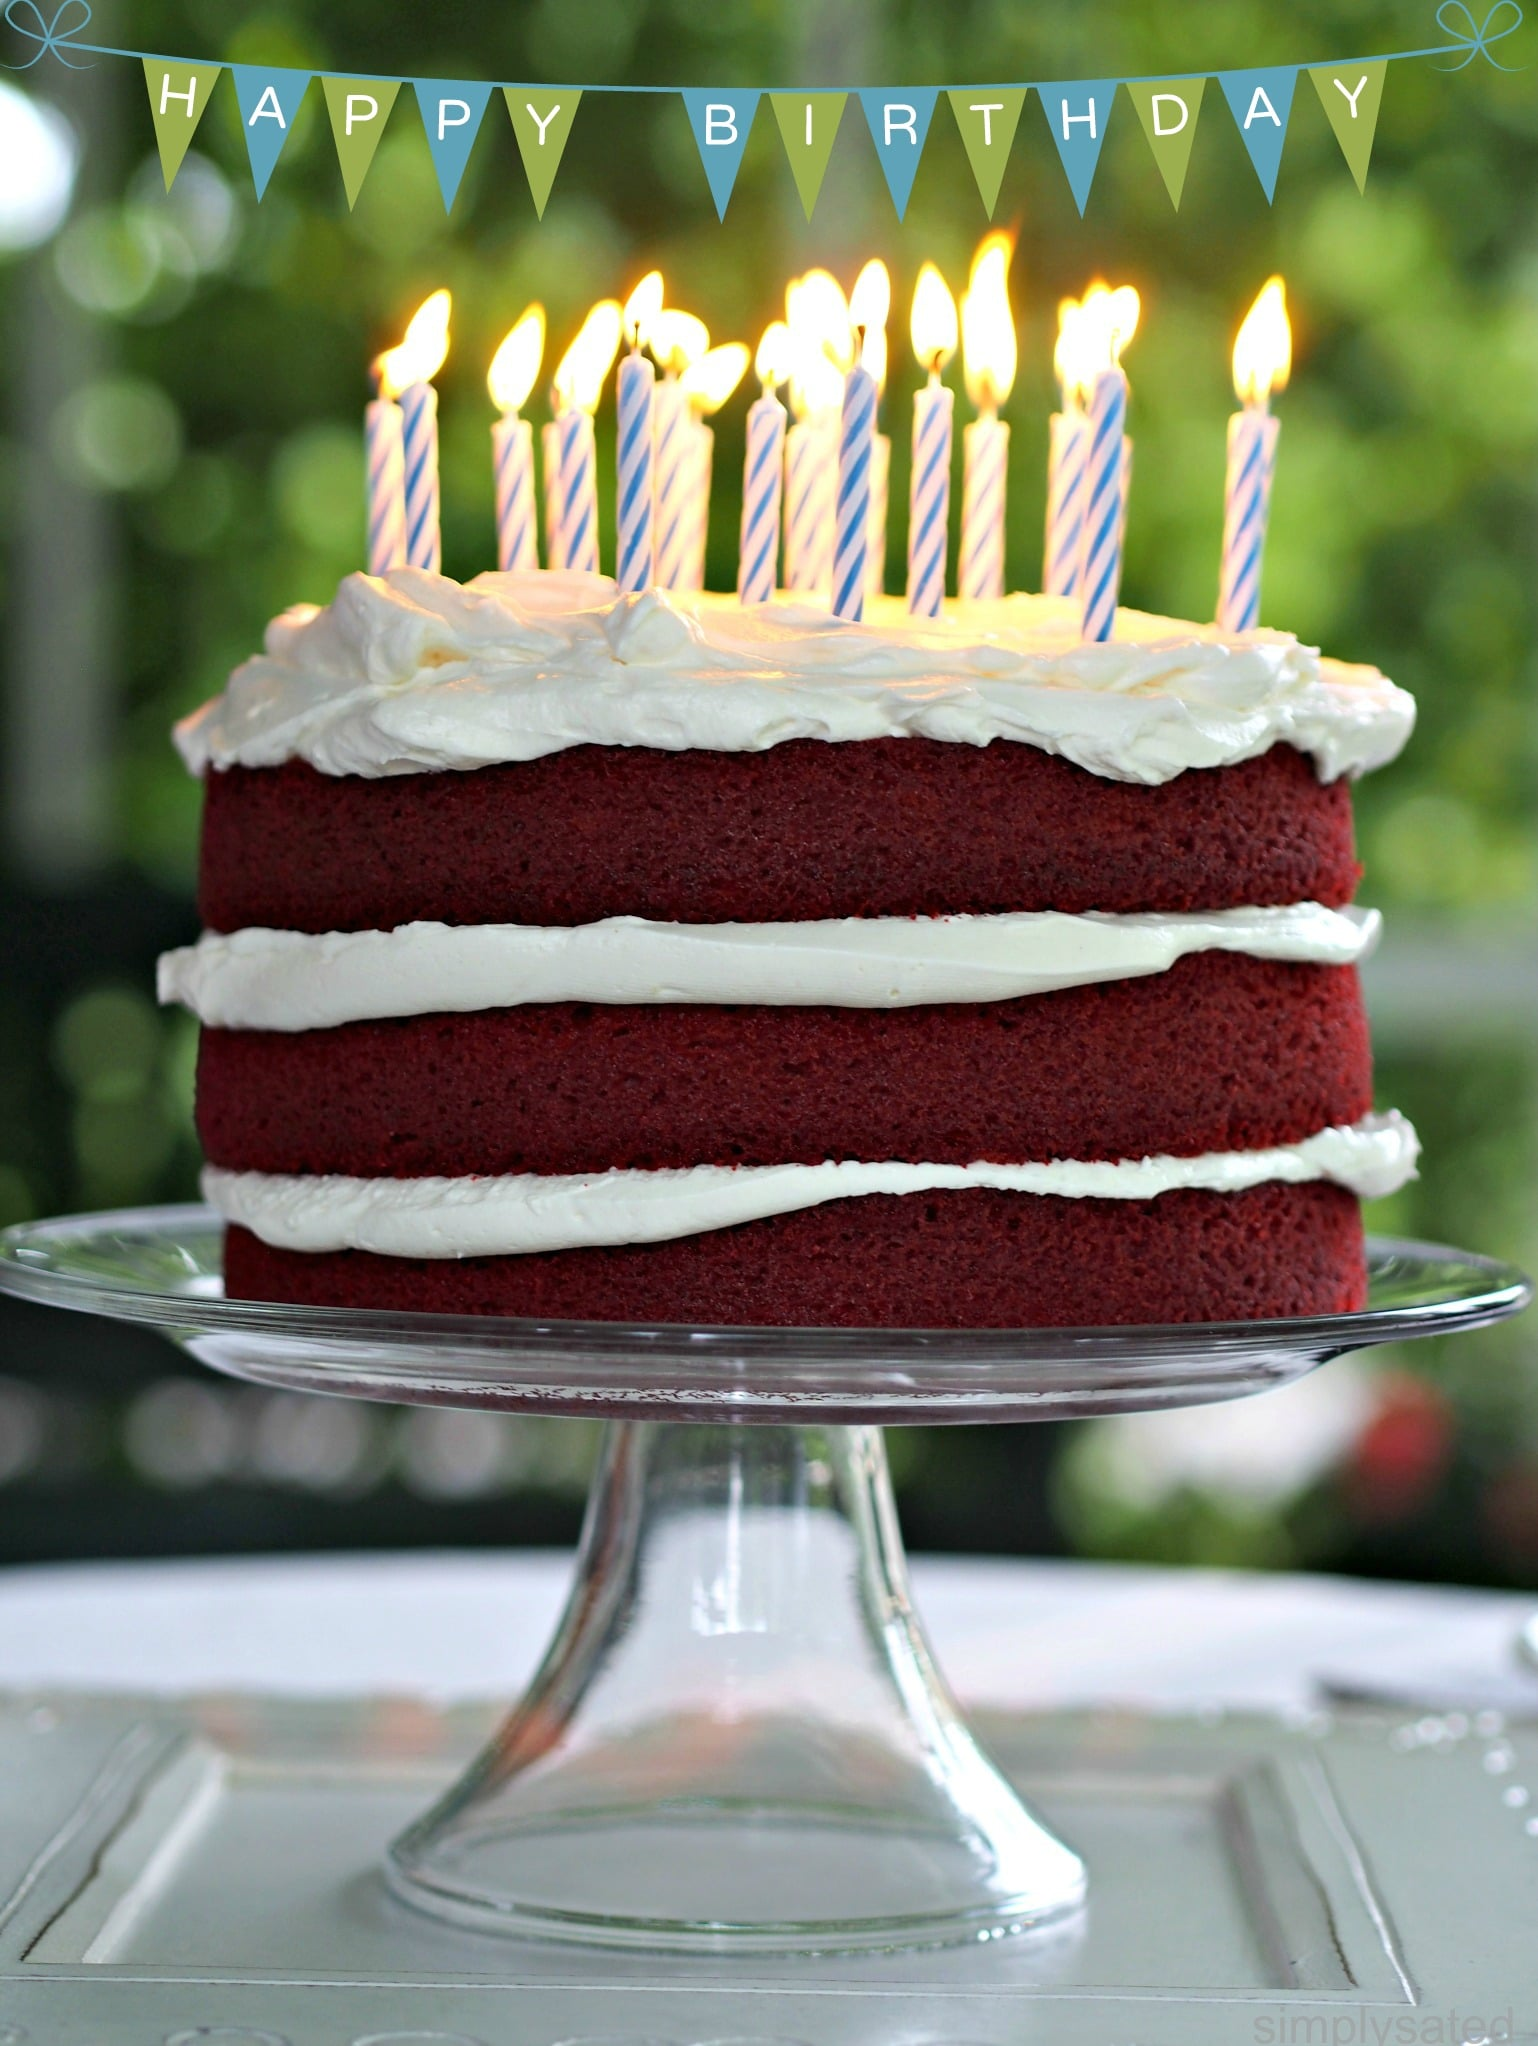 Pleasing Red Velvet Cake Simply Sated Birthday Cards Printable Benkemecafe Filternl